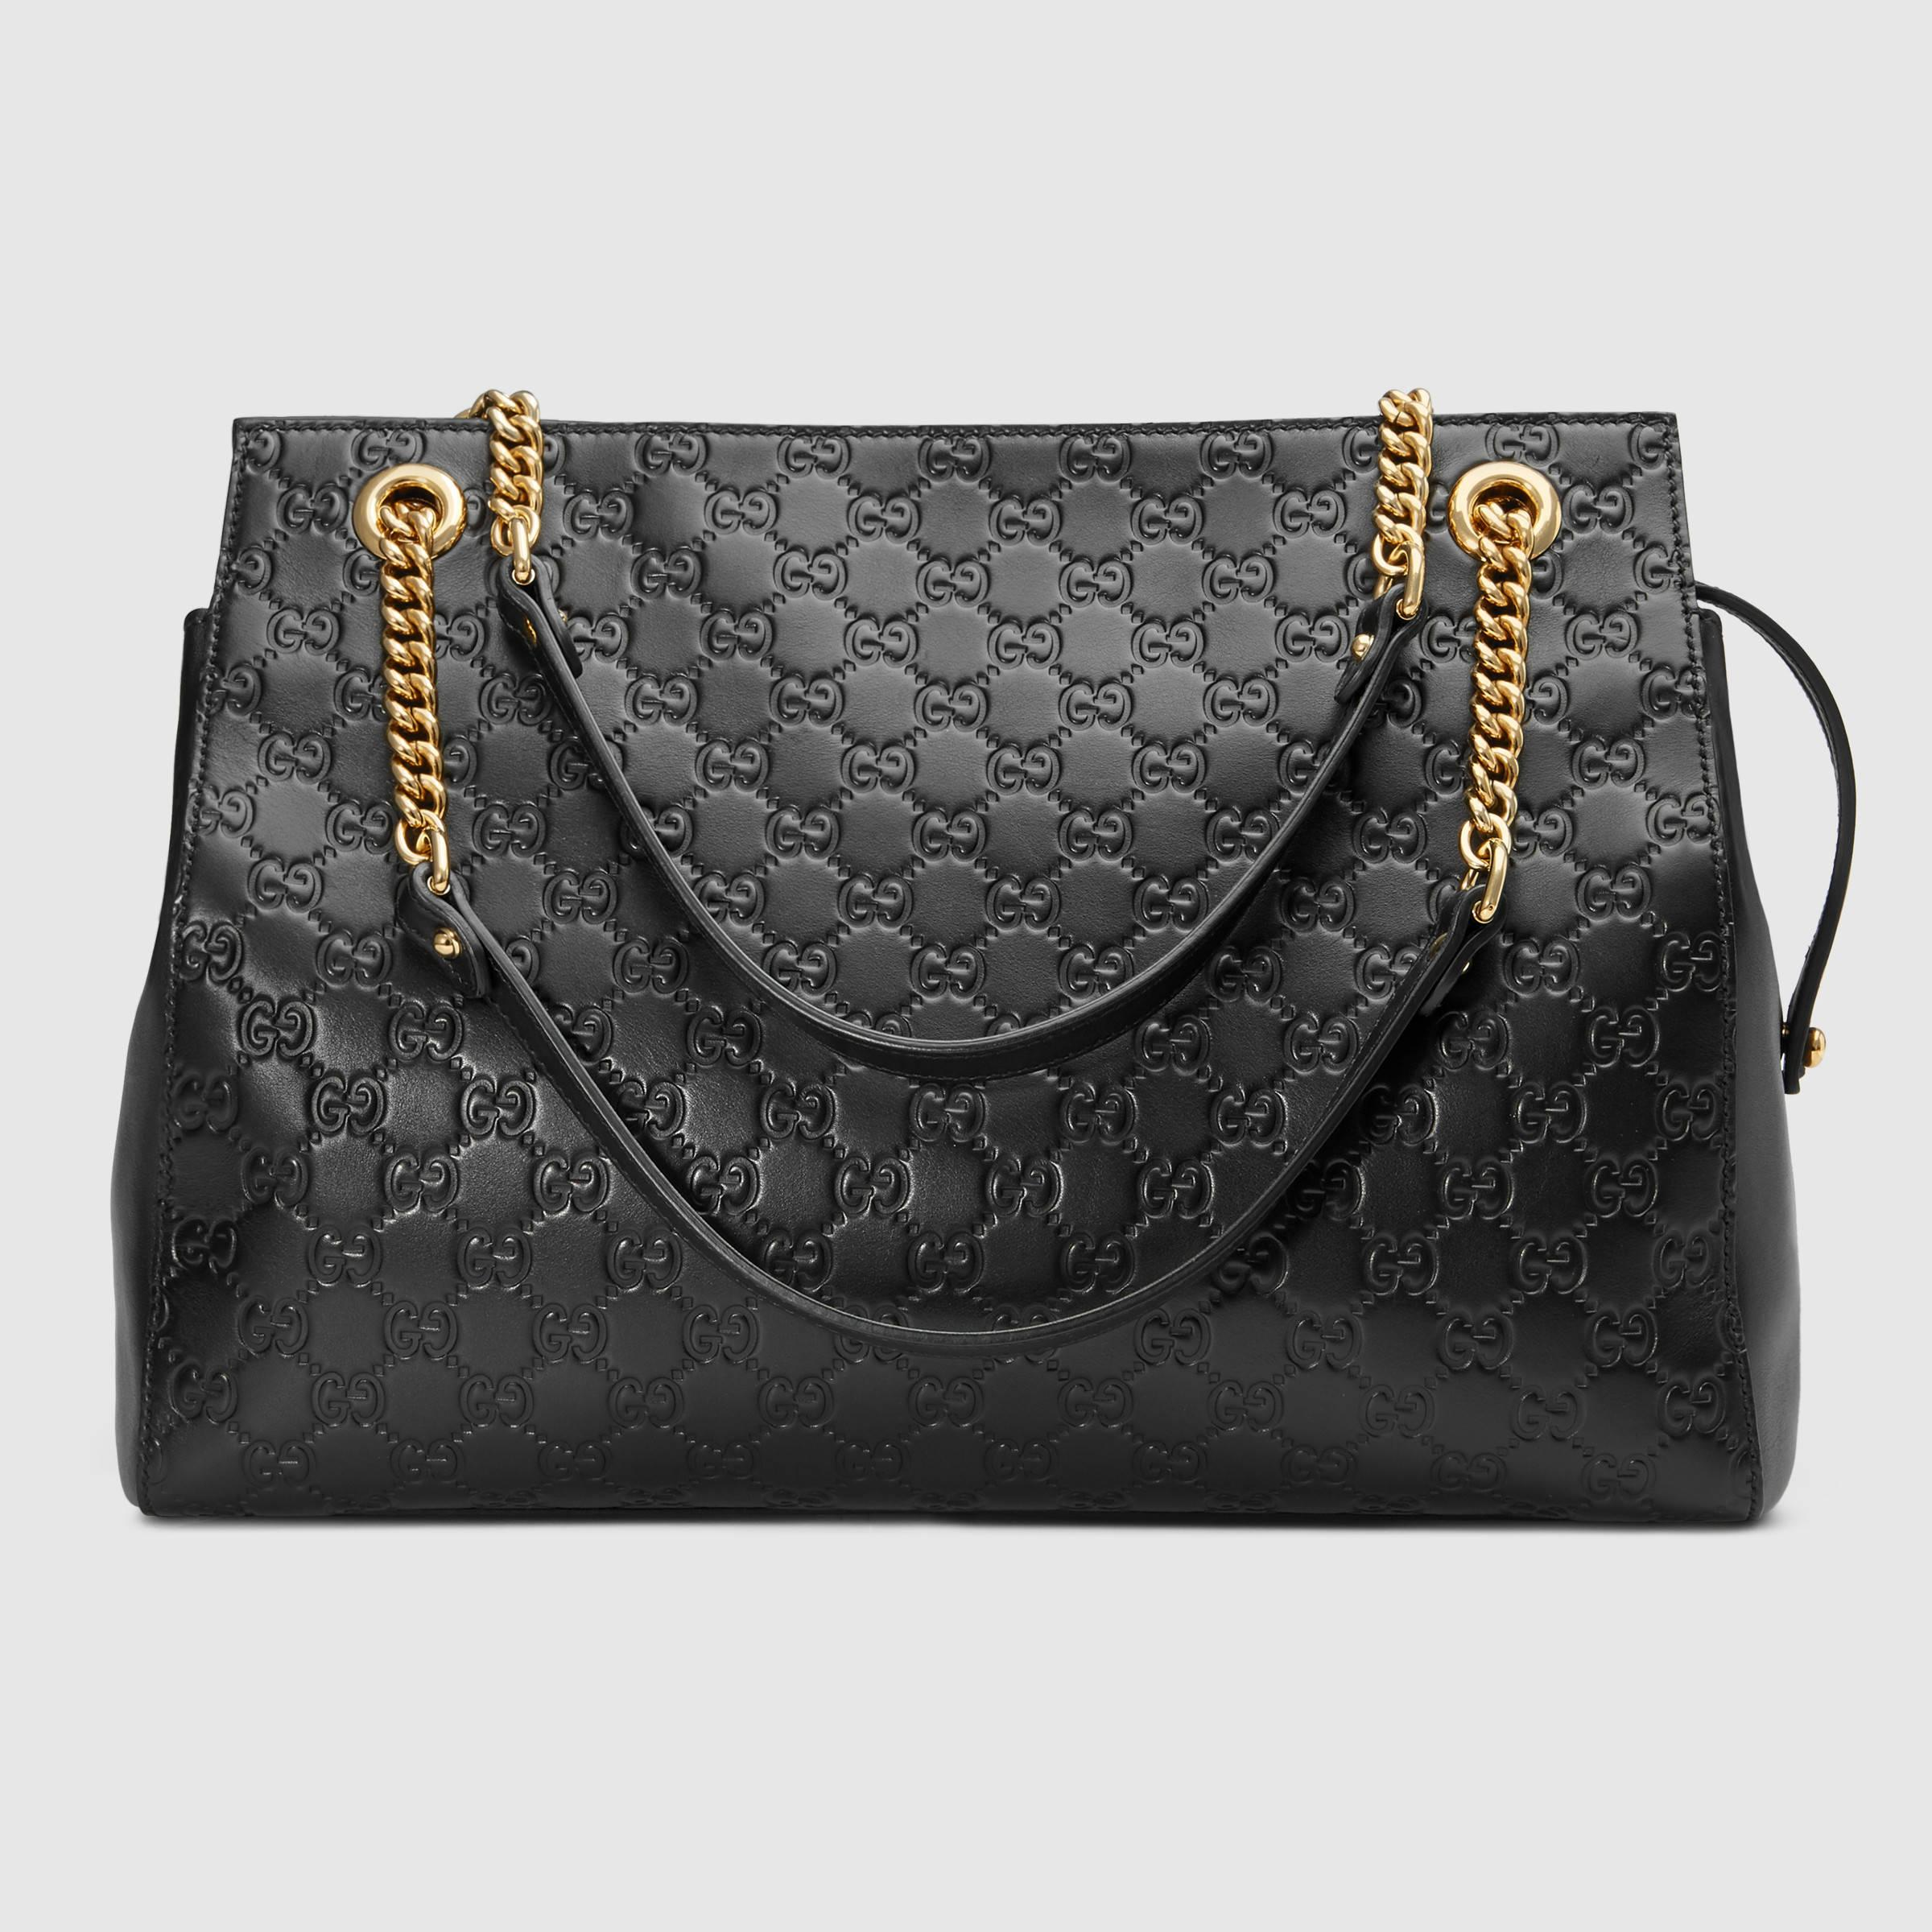 438a6a7bb25 Lyst - Gucci Soft Signature Shoulder Bag